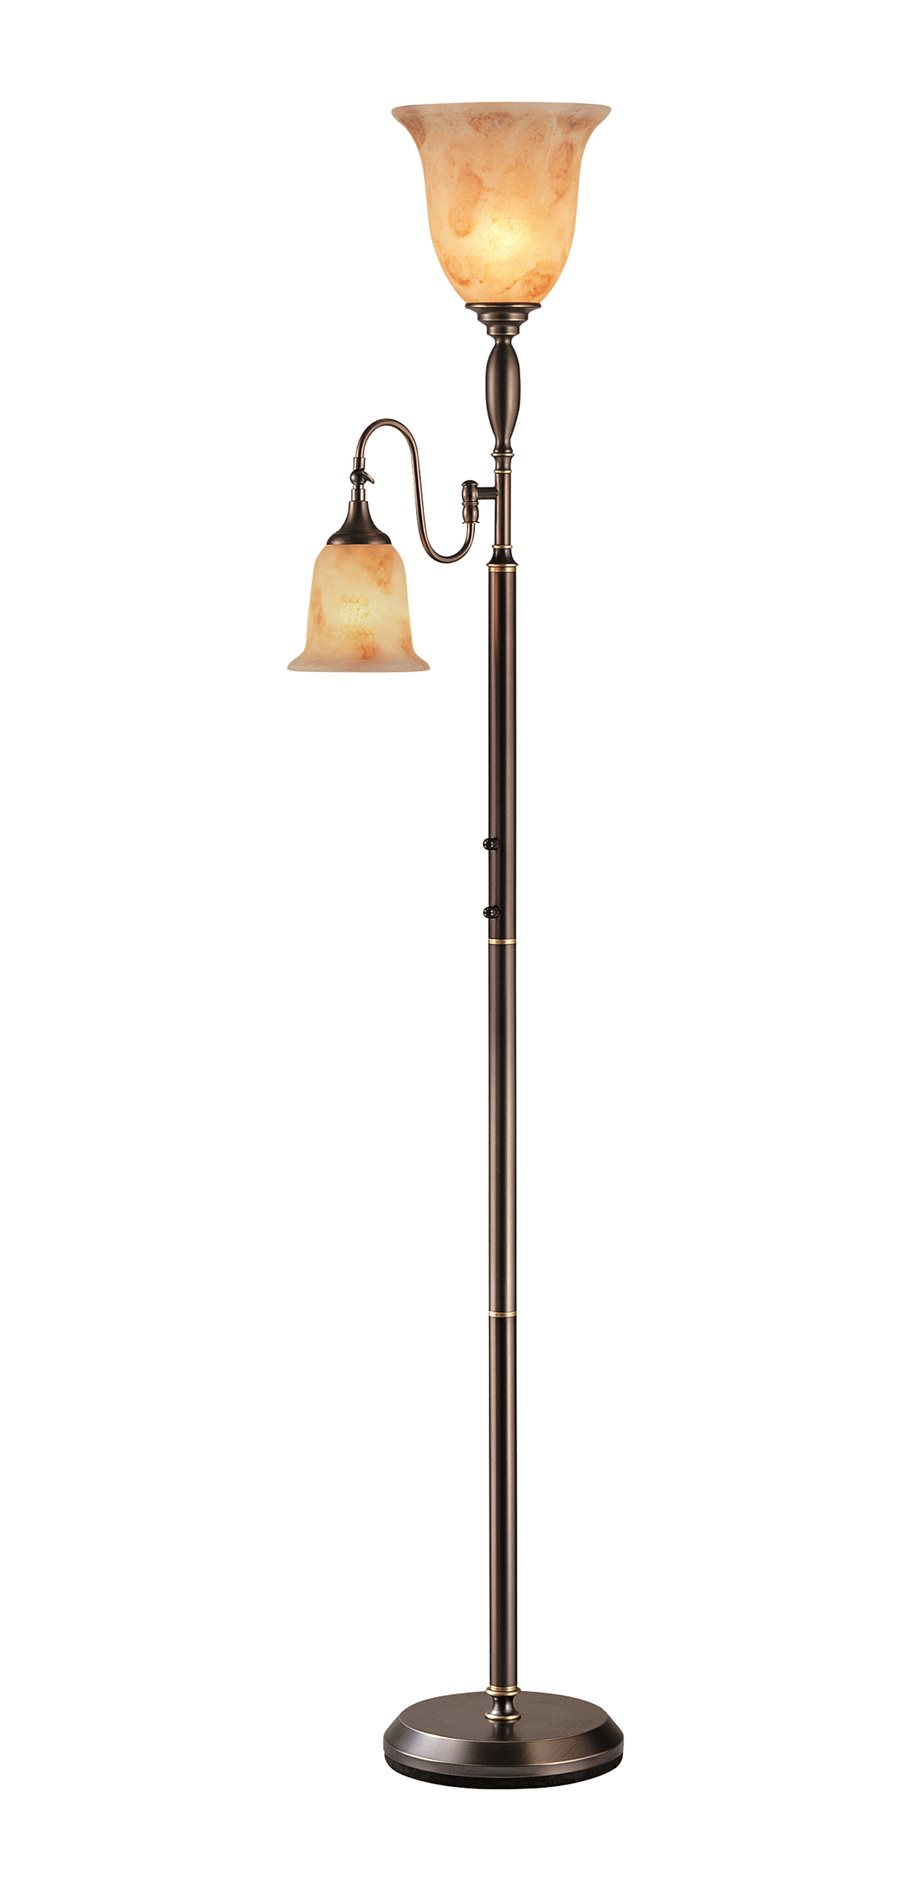 Lite Source Ls 80442d Brz Zesiro Traditional Torchiere Reading Lamp Ls 80442 D Brz